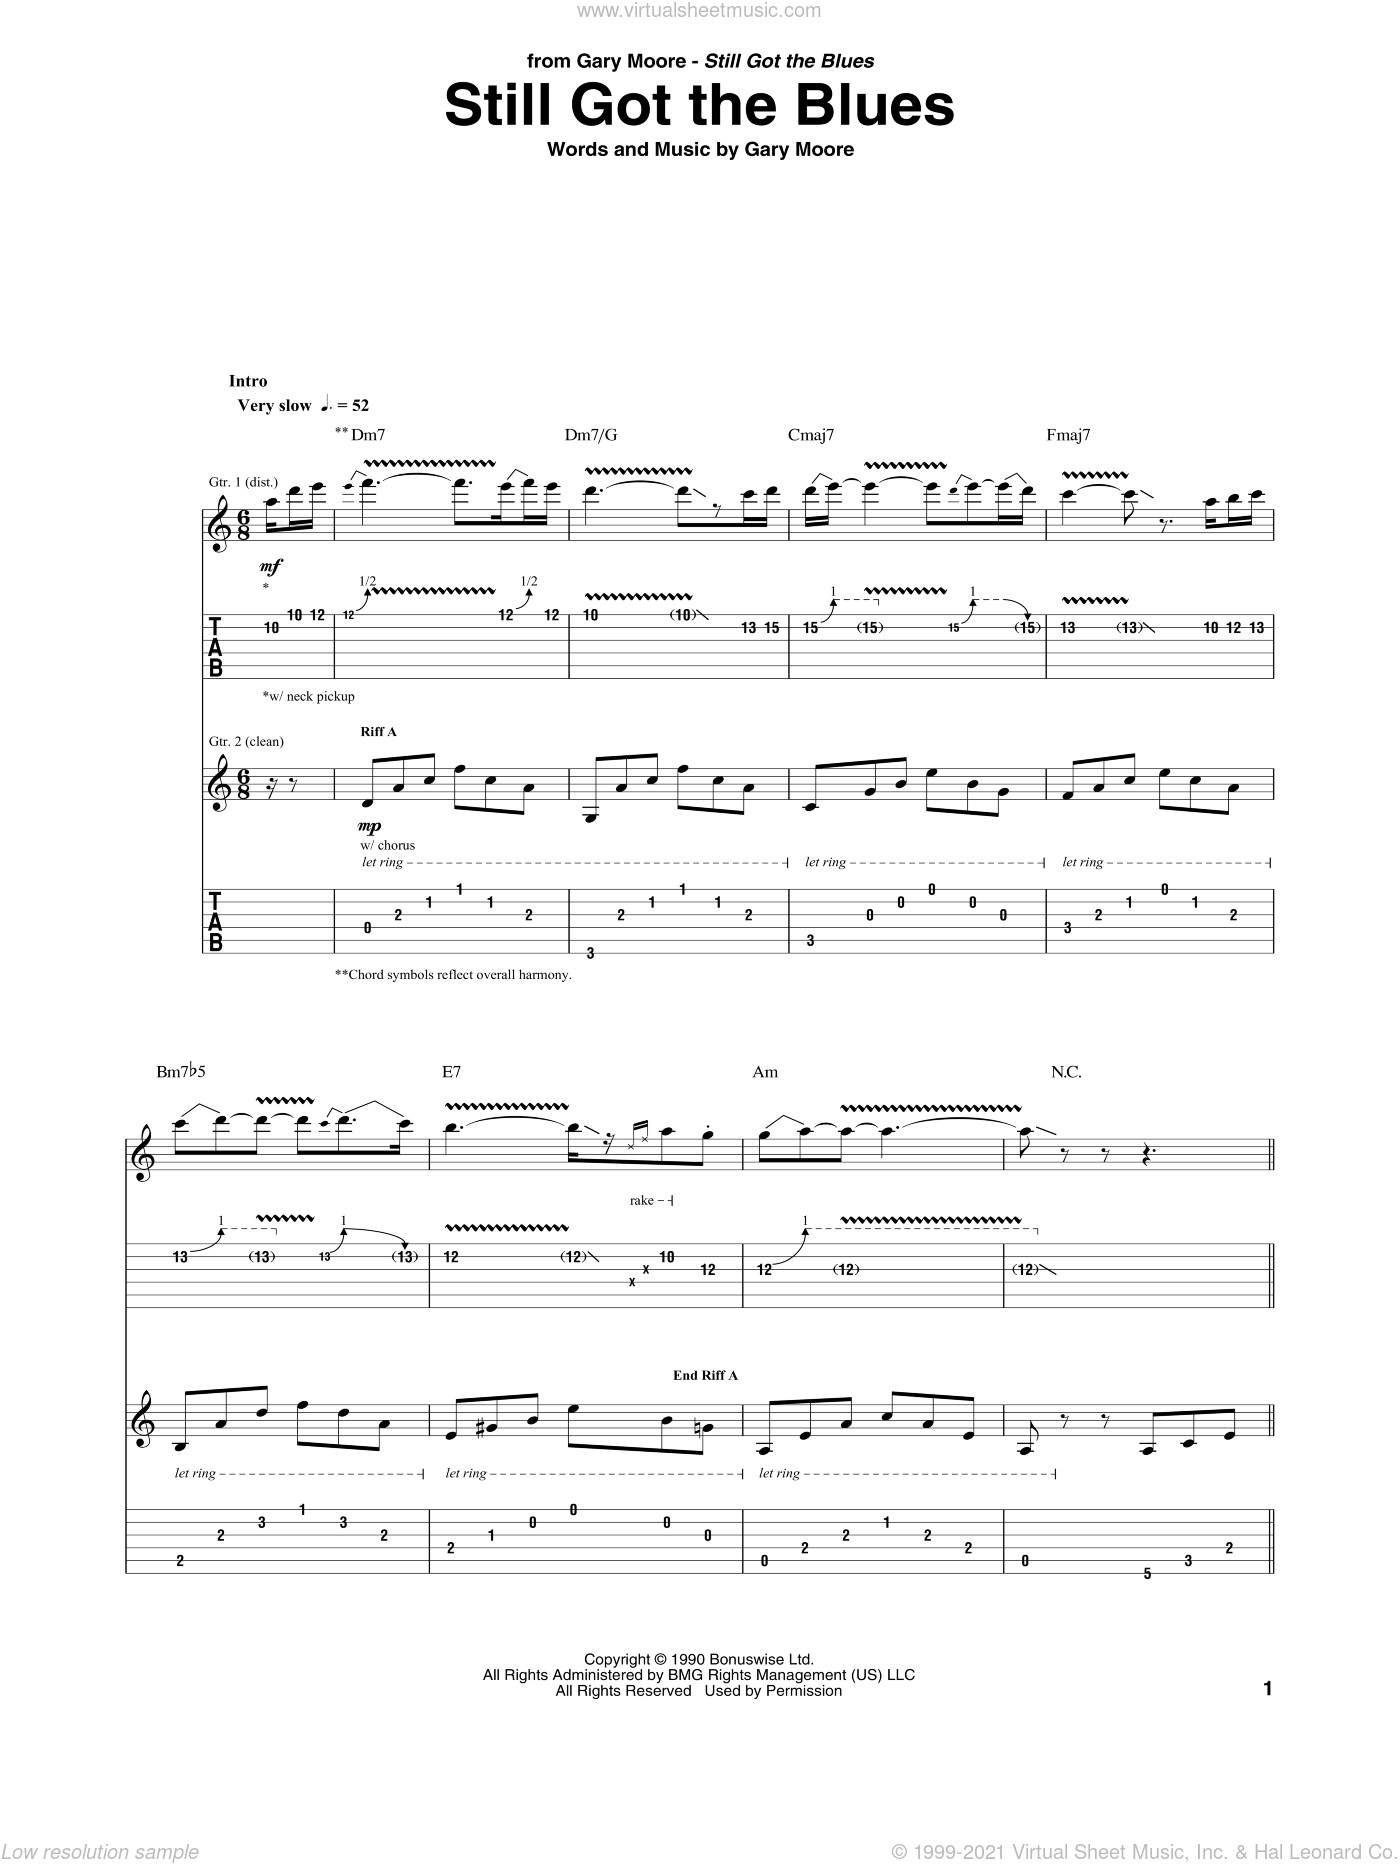 Still Got The Blues sheet music for guitar (tablature) by Gary Moore, intermediate skill level